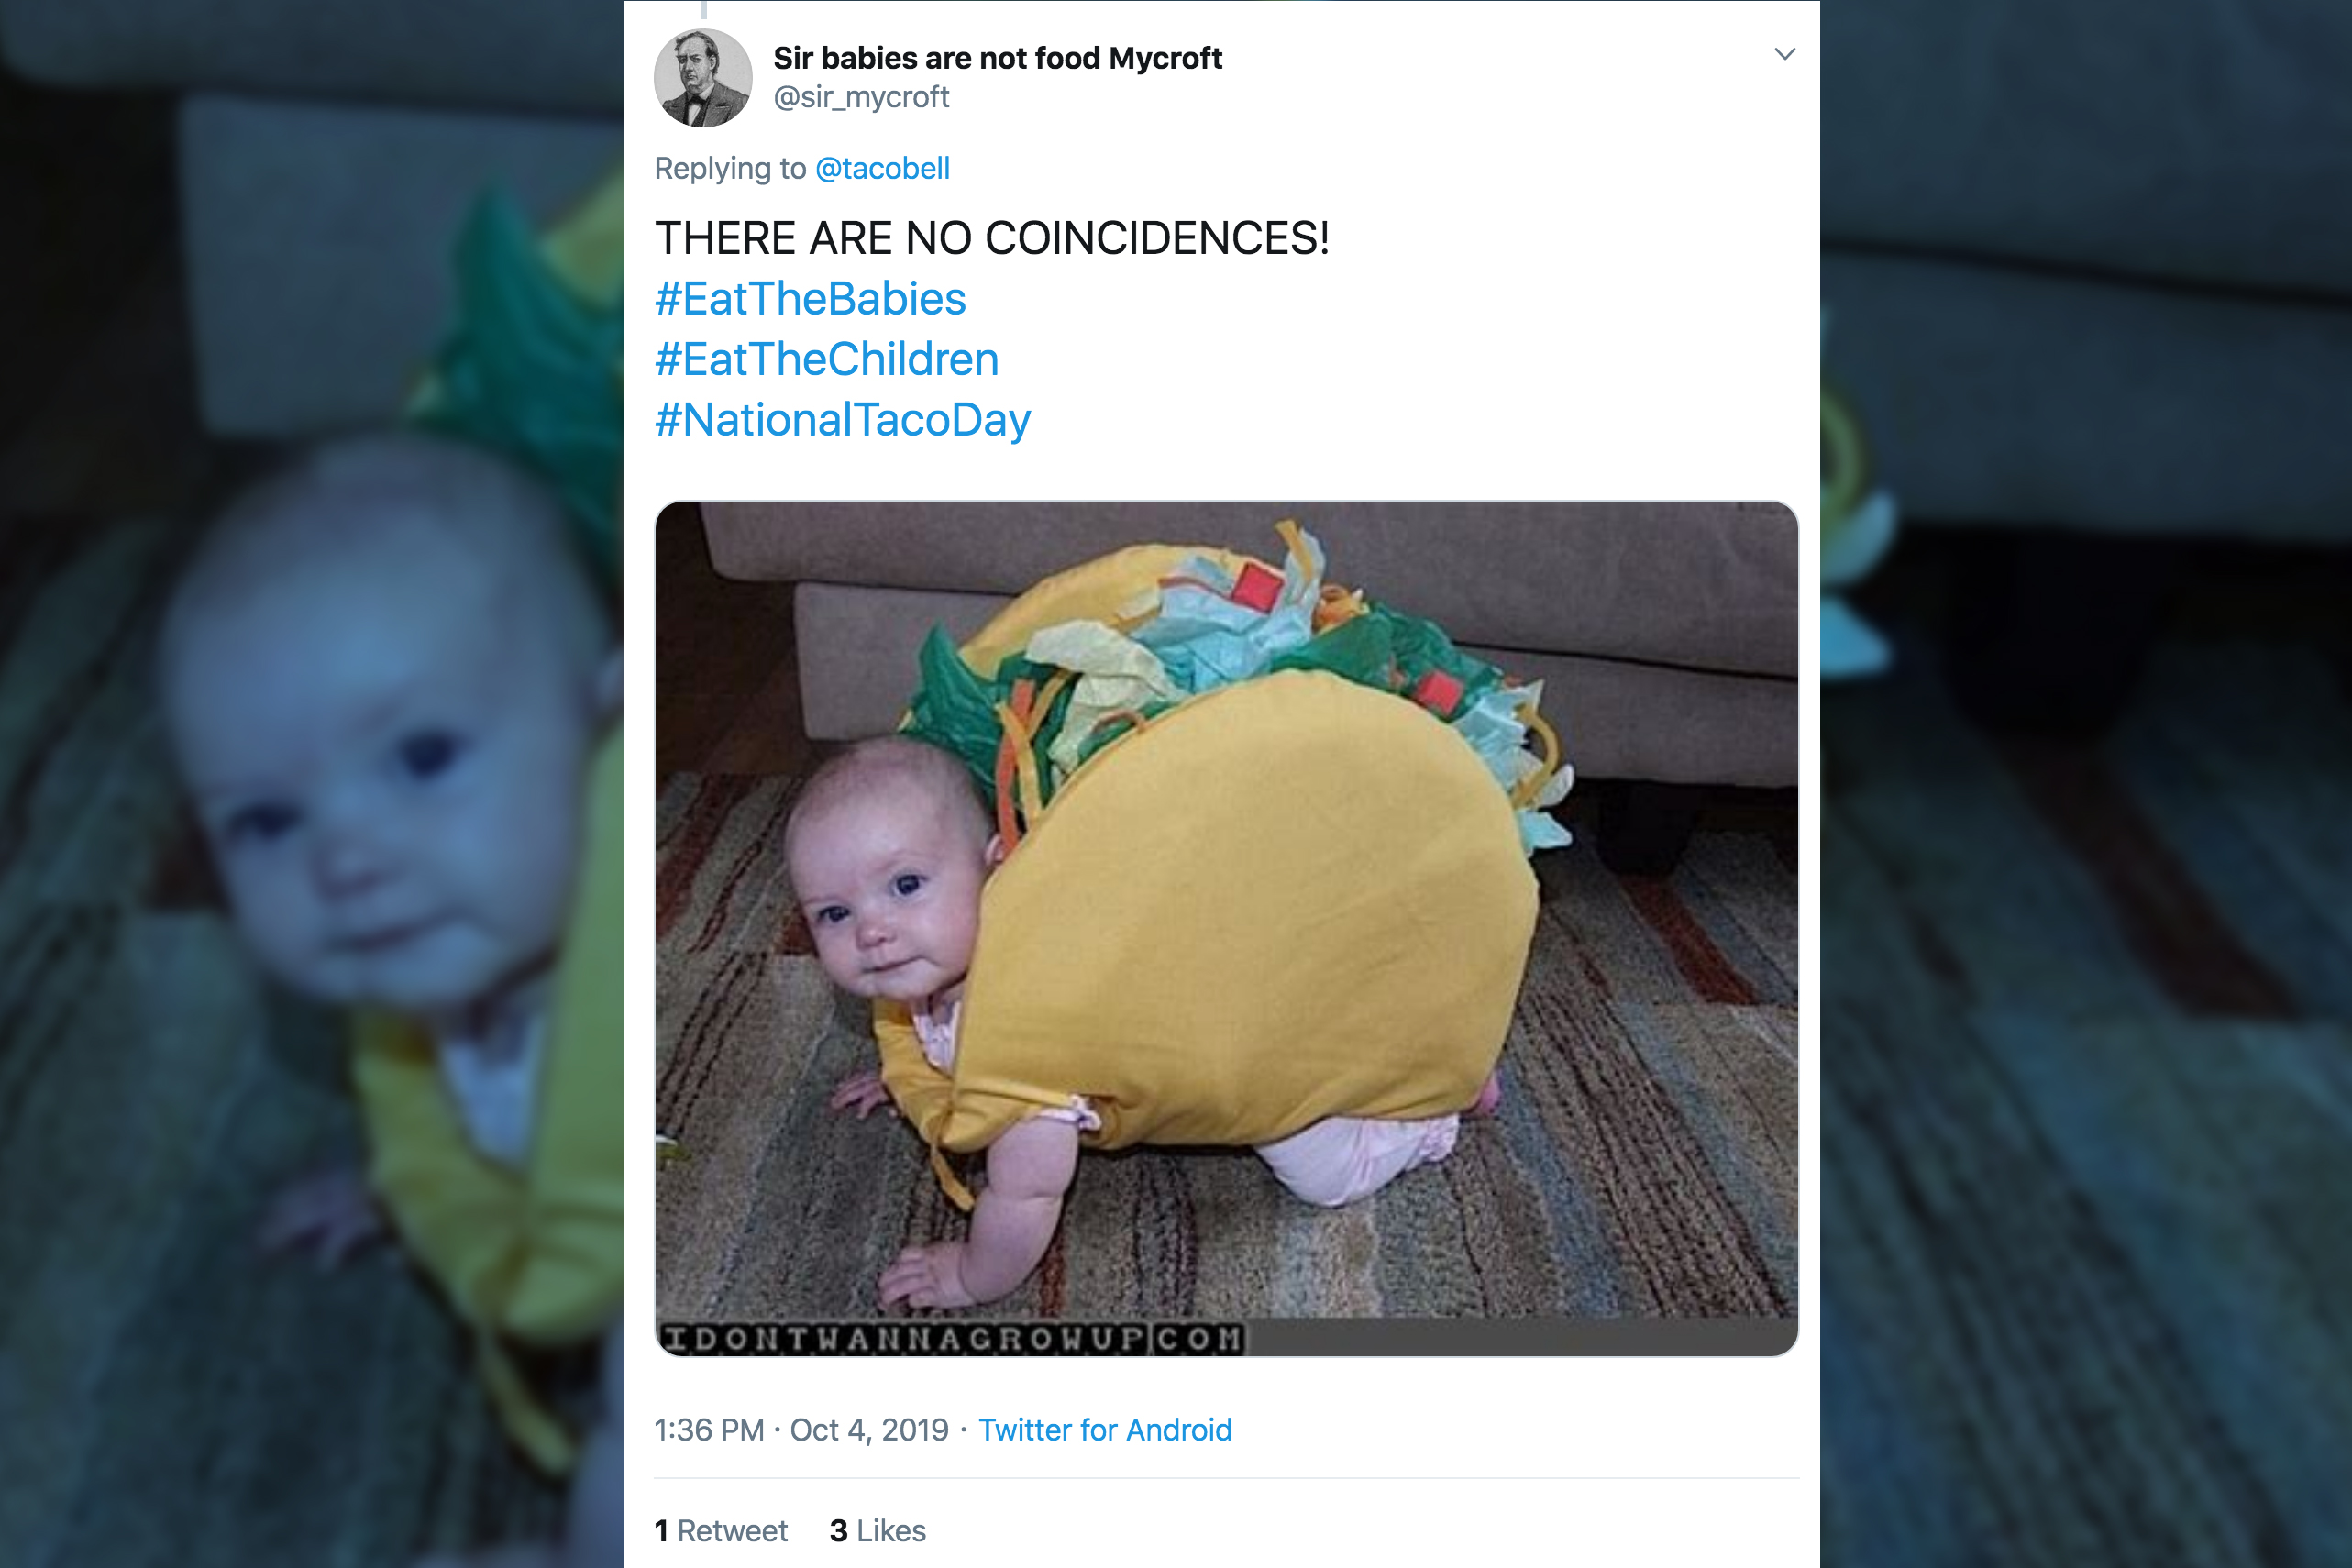 Taco Bell's Twitter ads are promoted with politically-charged hashtags #EattheChildren and #EattheBabies